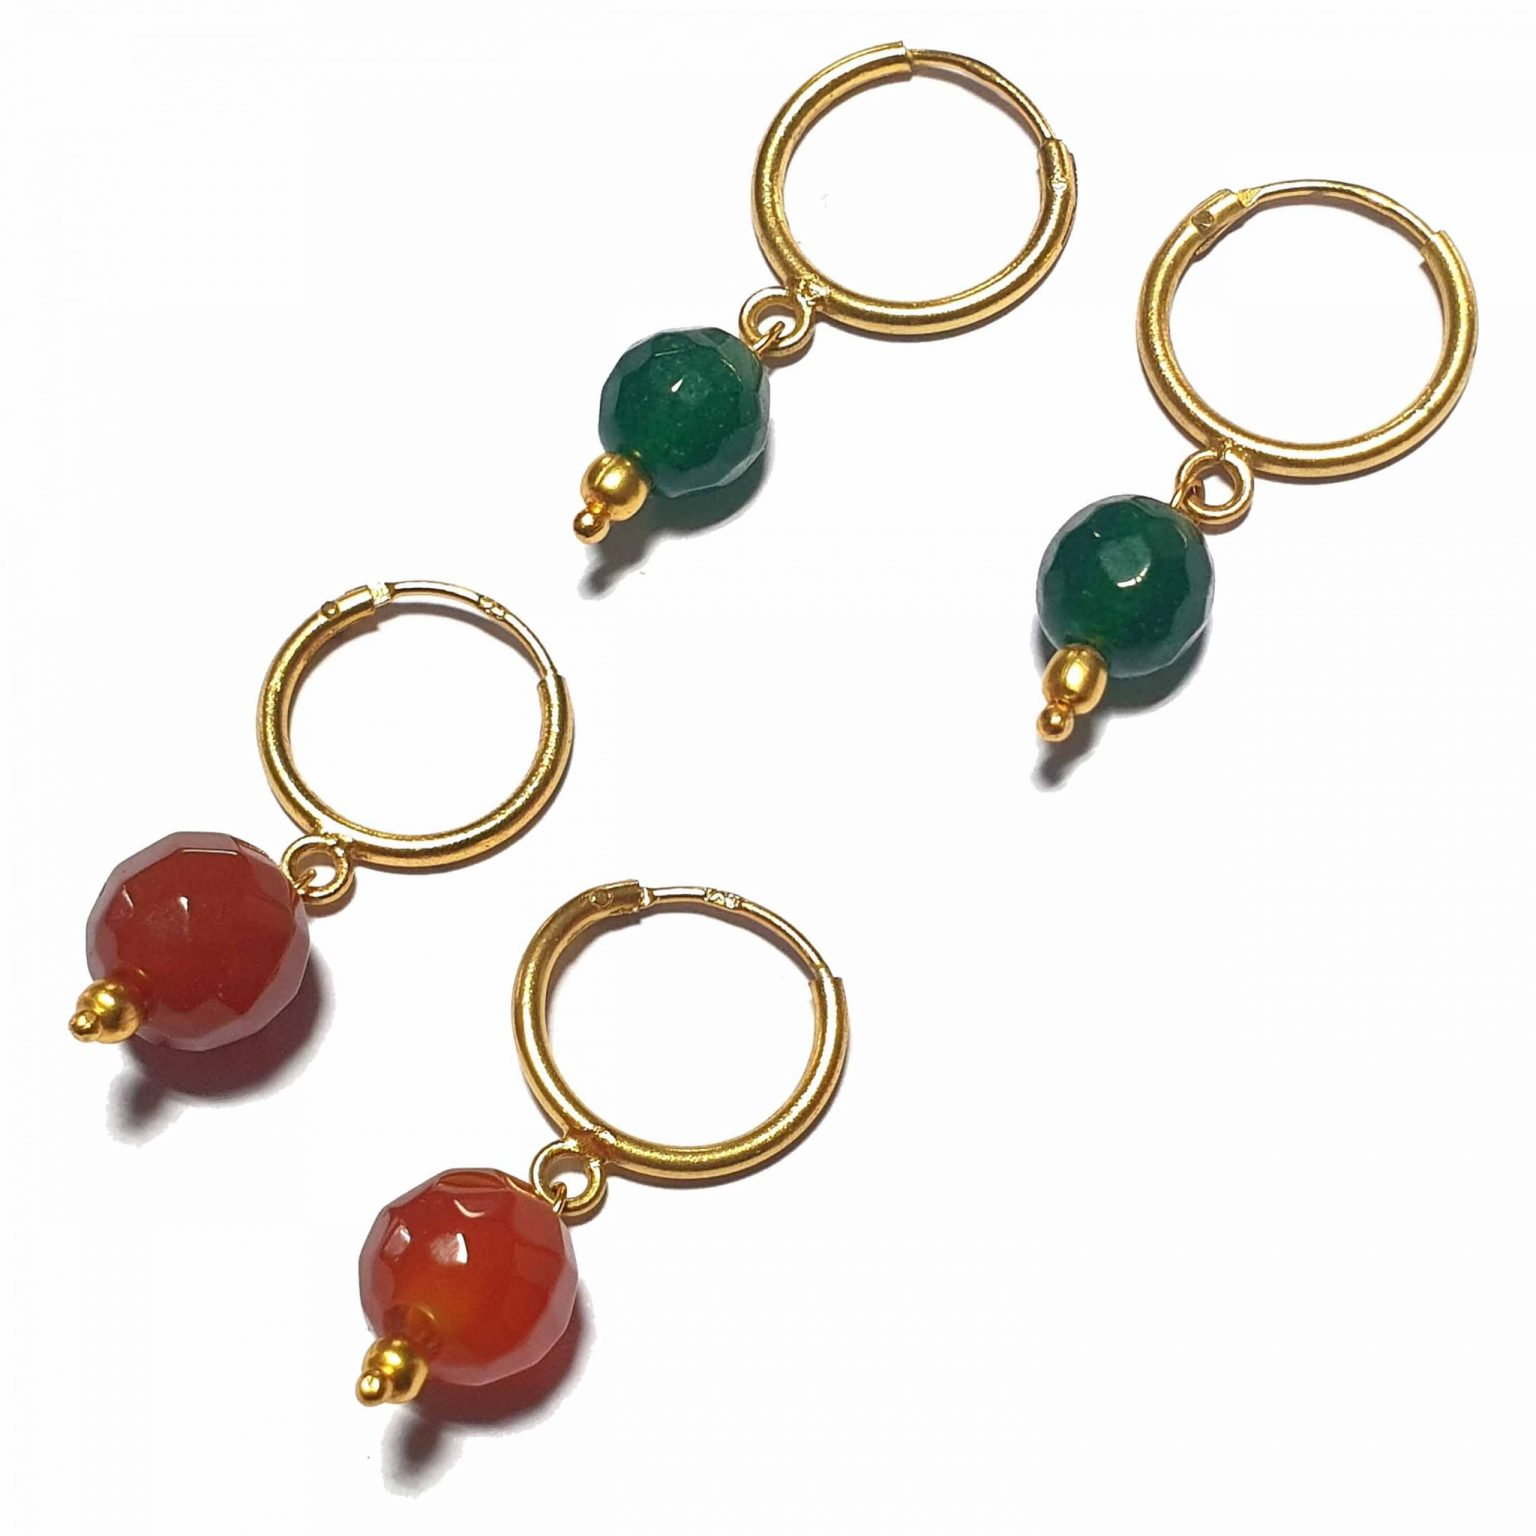 Silver Bali Set of 2 Combo with Red Chalcedony and Dark Green Chalcedony Gold Polished Bali in Pure Silver 925   Earrings for Women